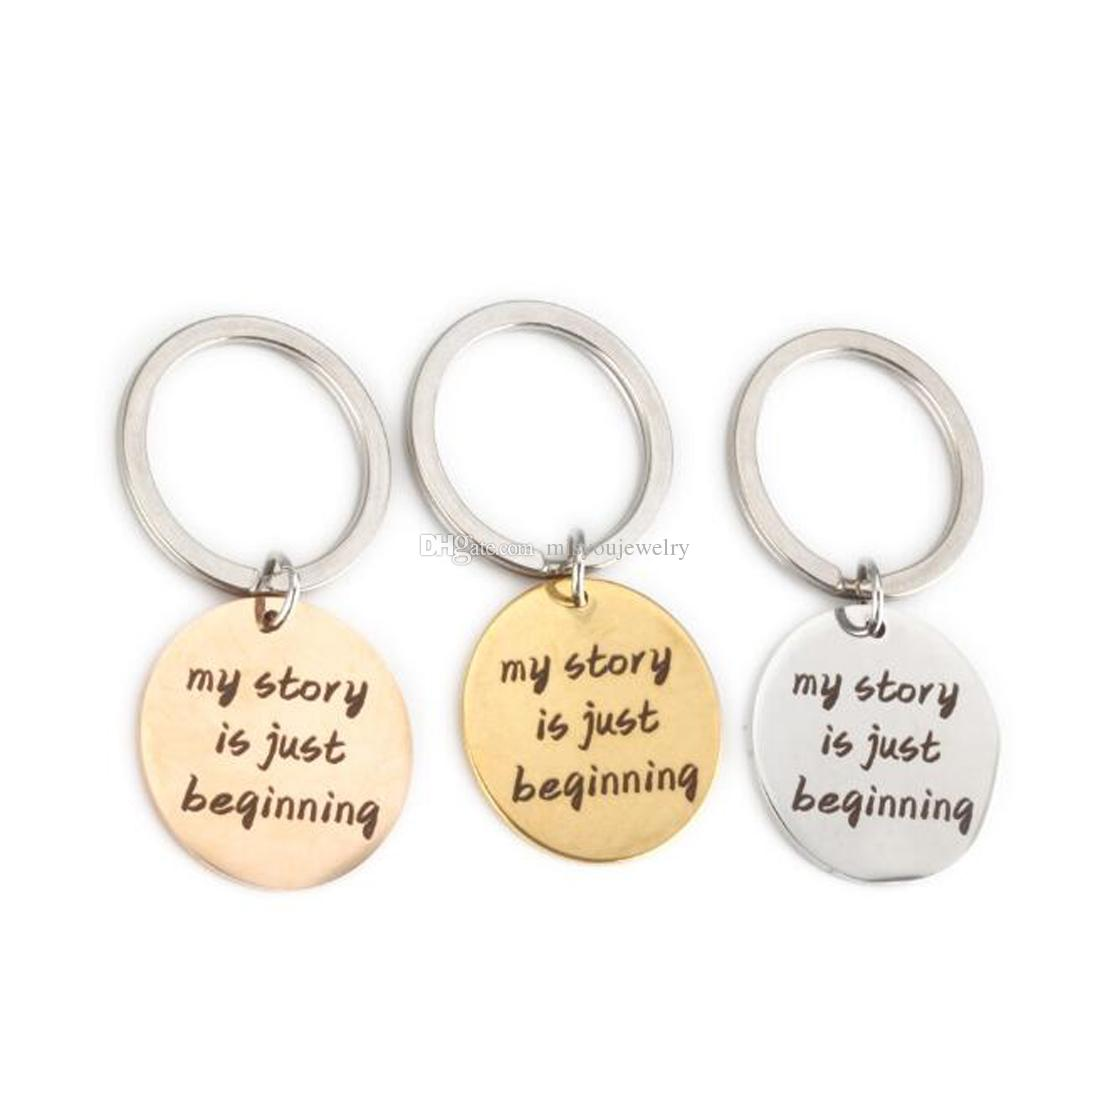 my stories is just beginning Inspired Necklace Keychain,stainless Silver gold rose gold Round,Depression Awareness Semicolon Jewelry